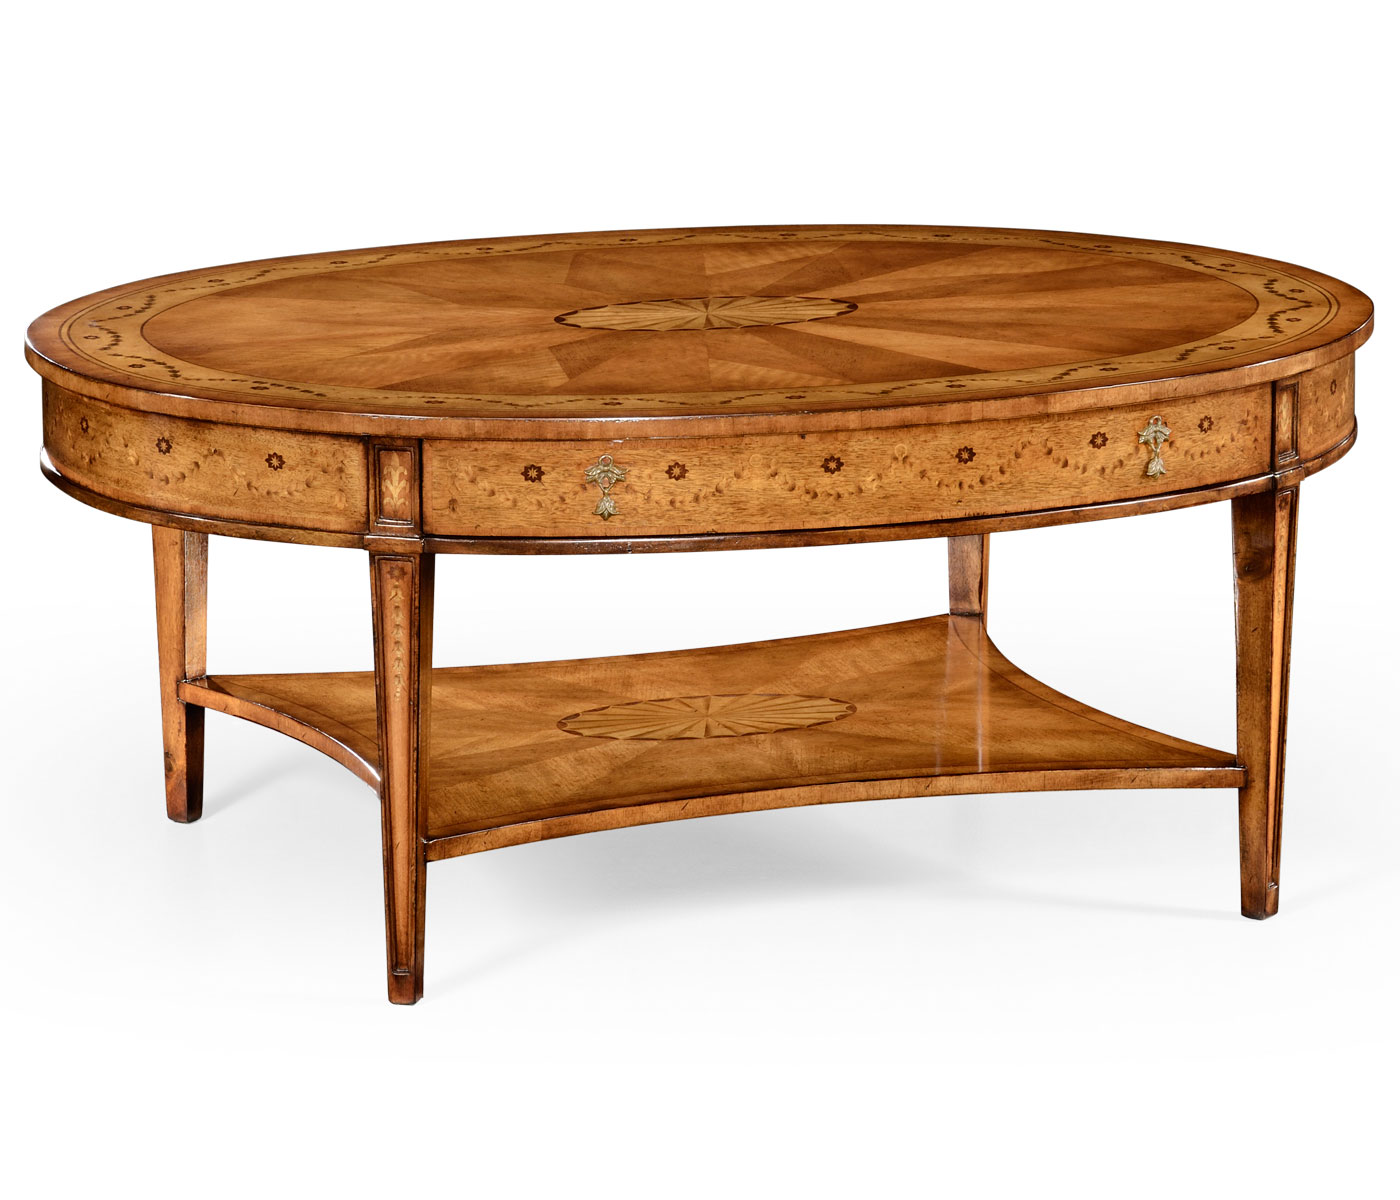 Oval Espresso Coffee Table: Sheraton Satinwood Oval Coffee Table